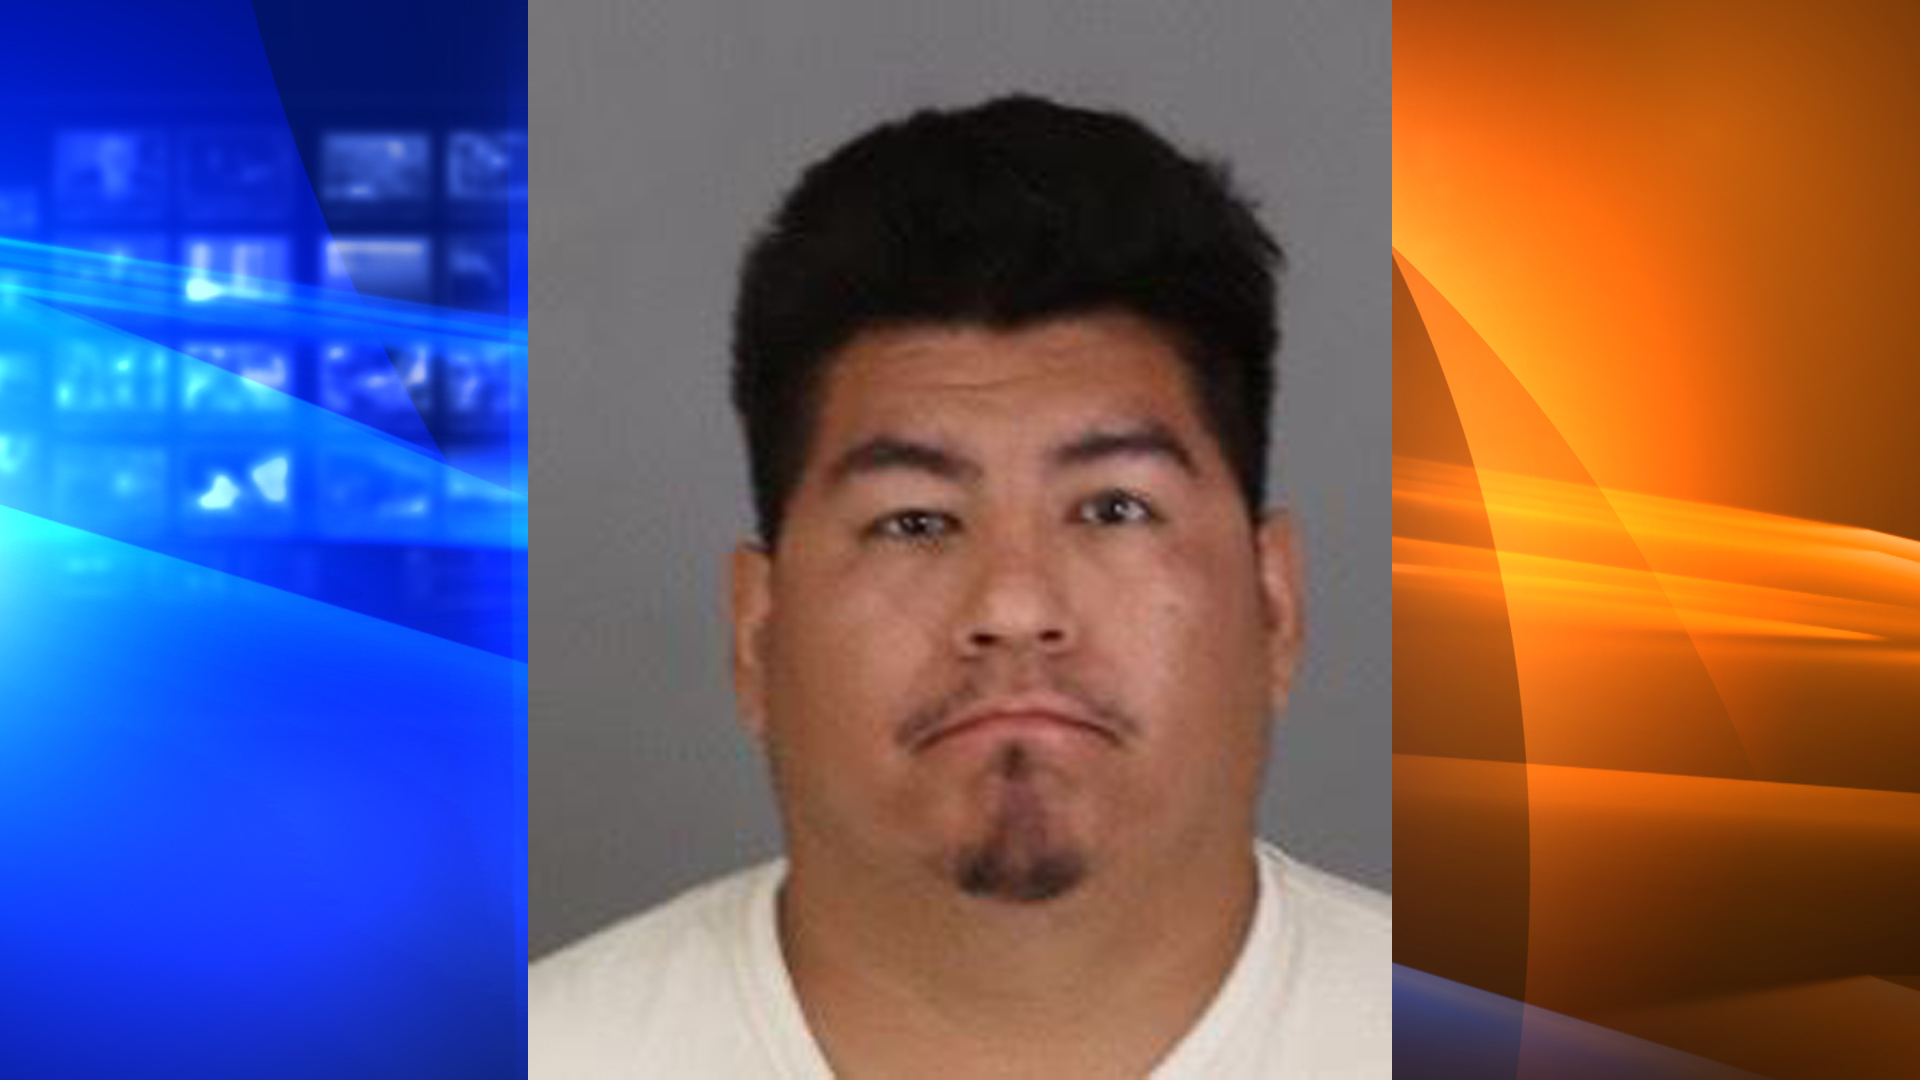 Luis Perales is seen in a photo released by the Riverside County Sheriff's Department on Sept. 10, 2021.